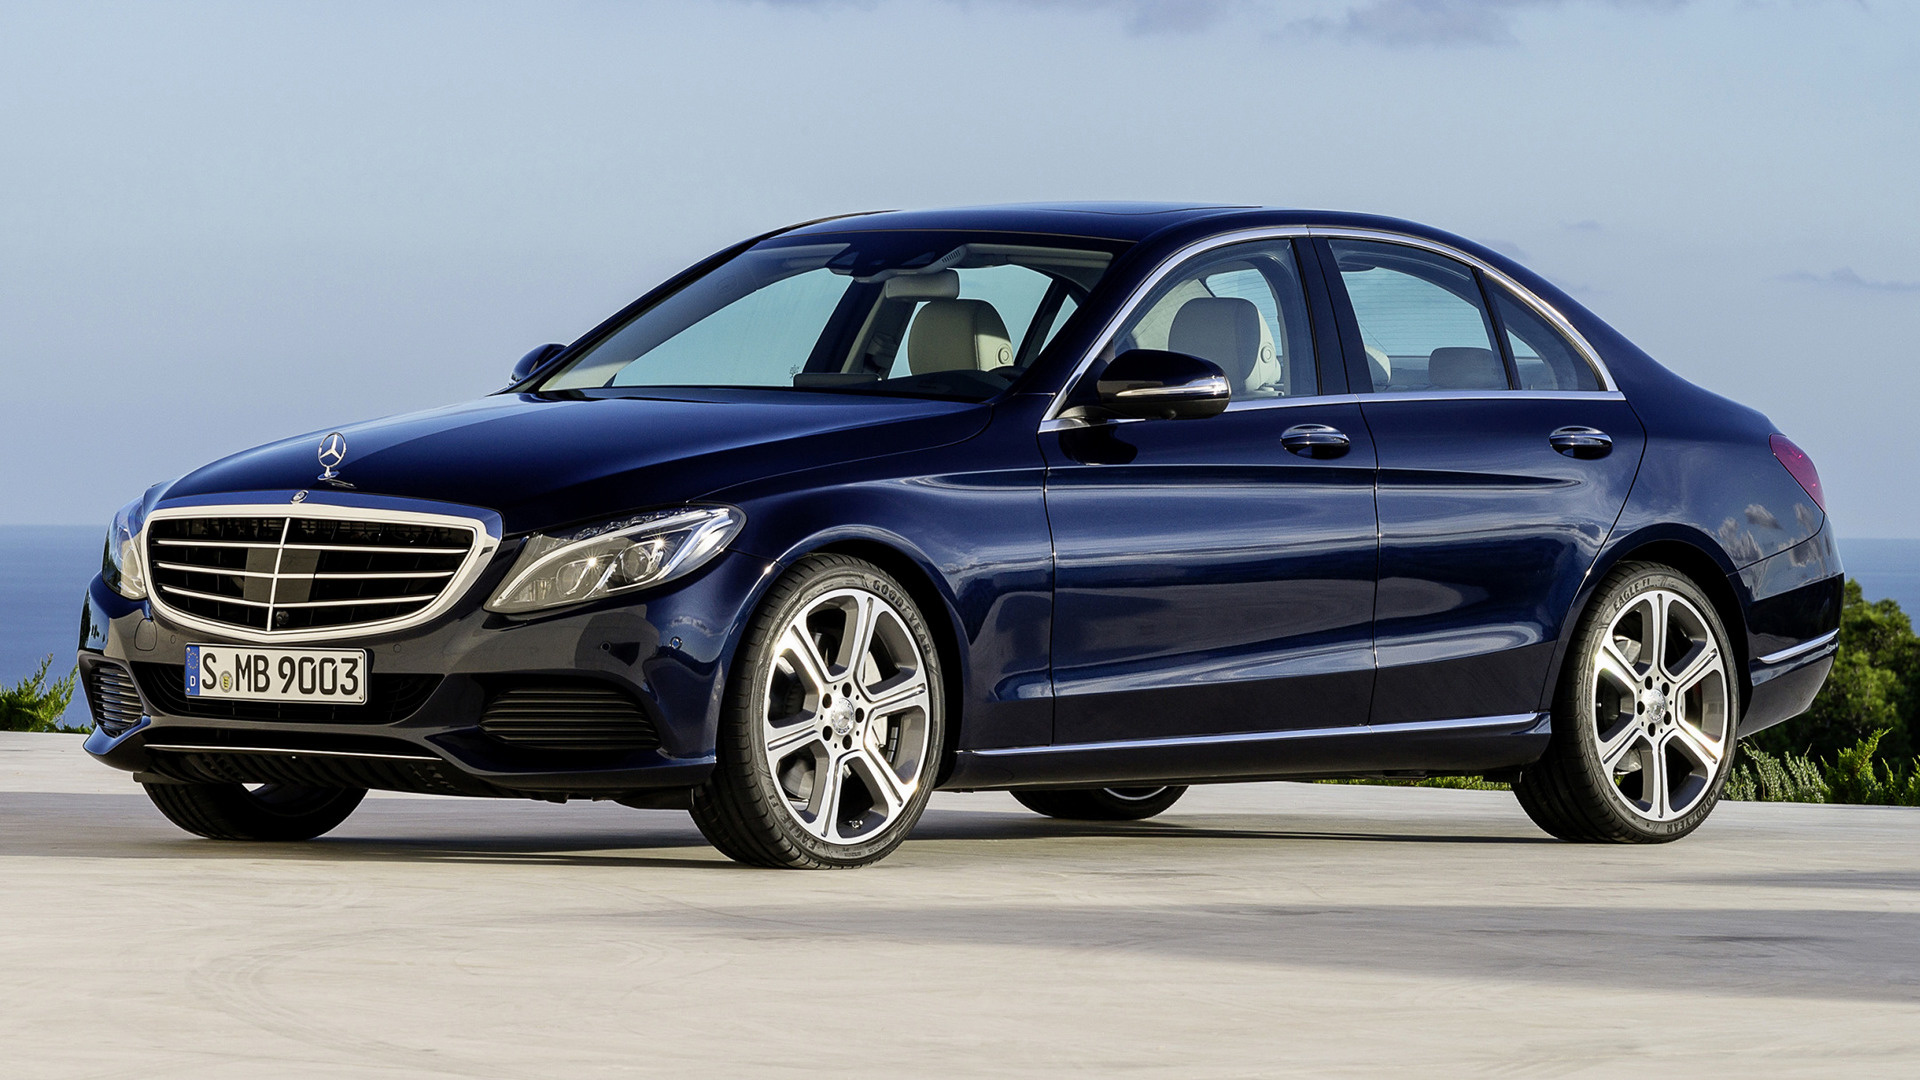 Mercedes benz c class hybrid with classic grille 2014 for Mercedes benz c class hybrid